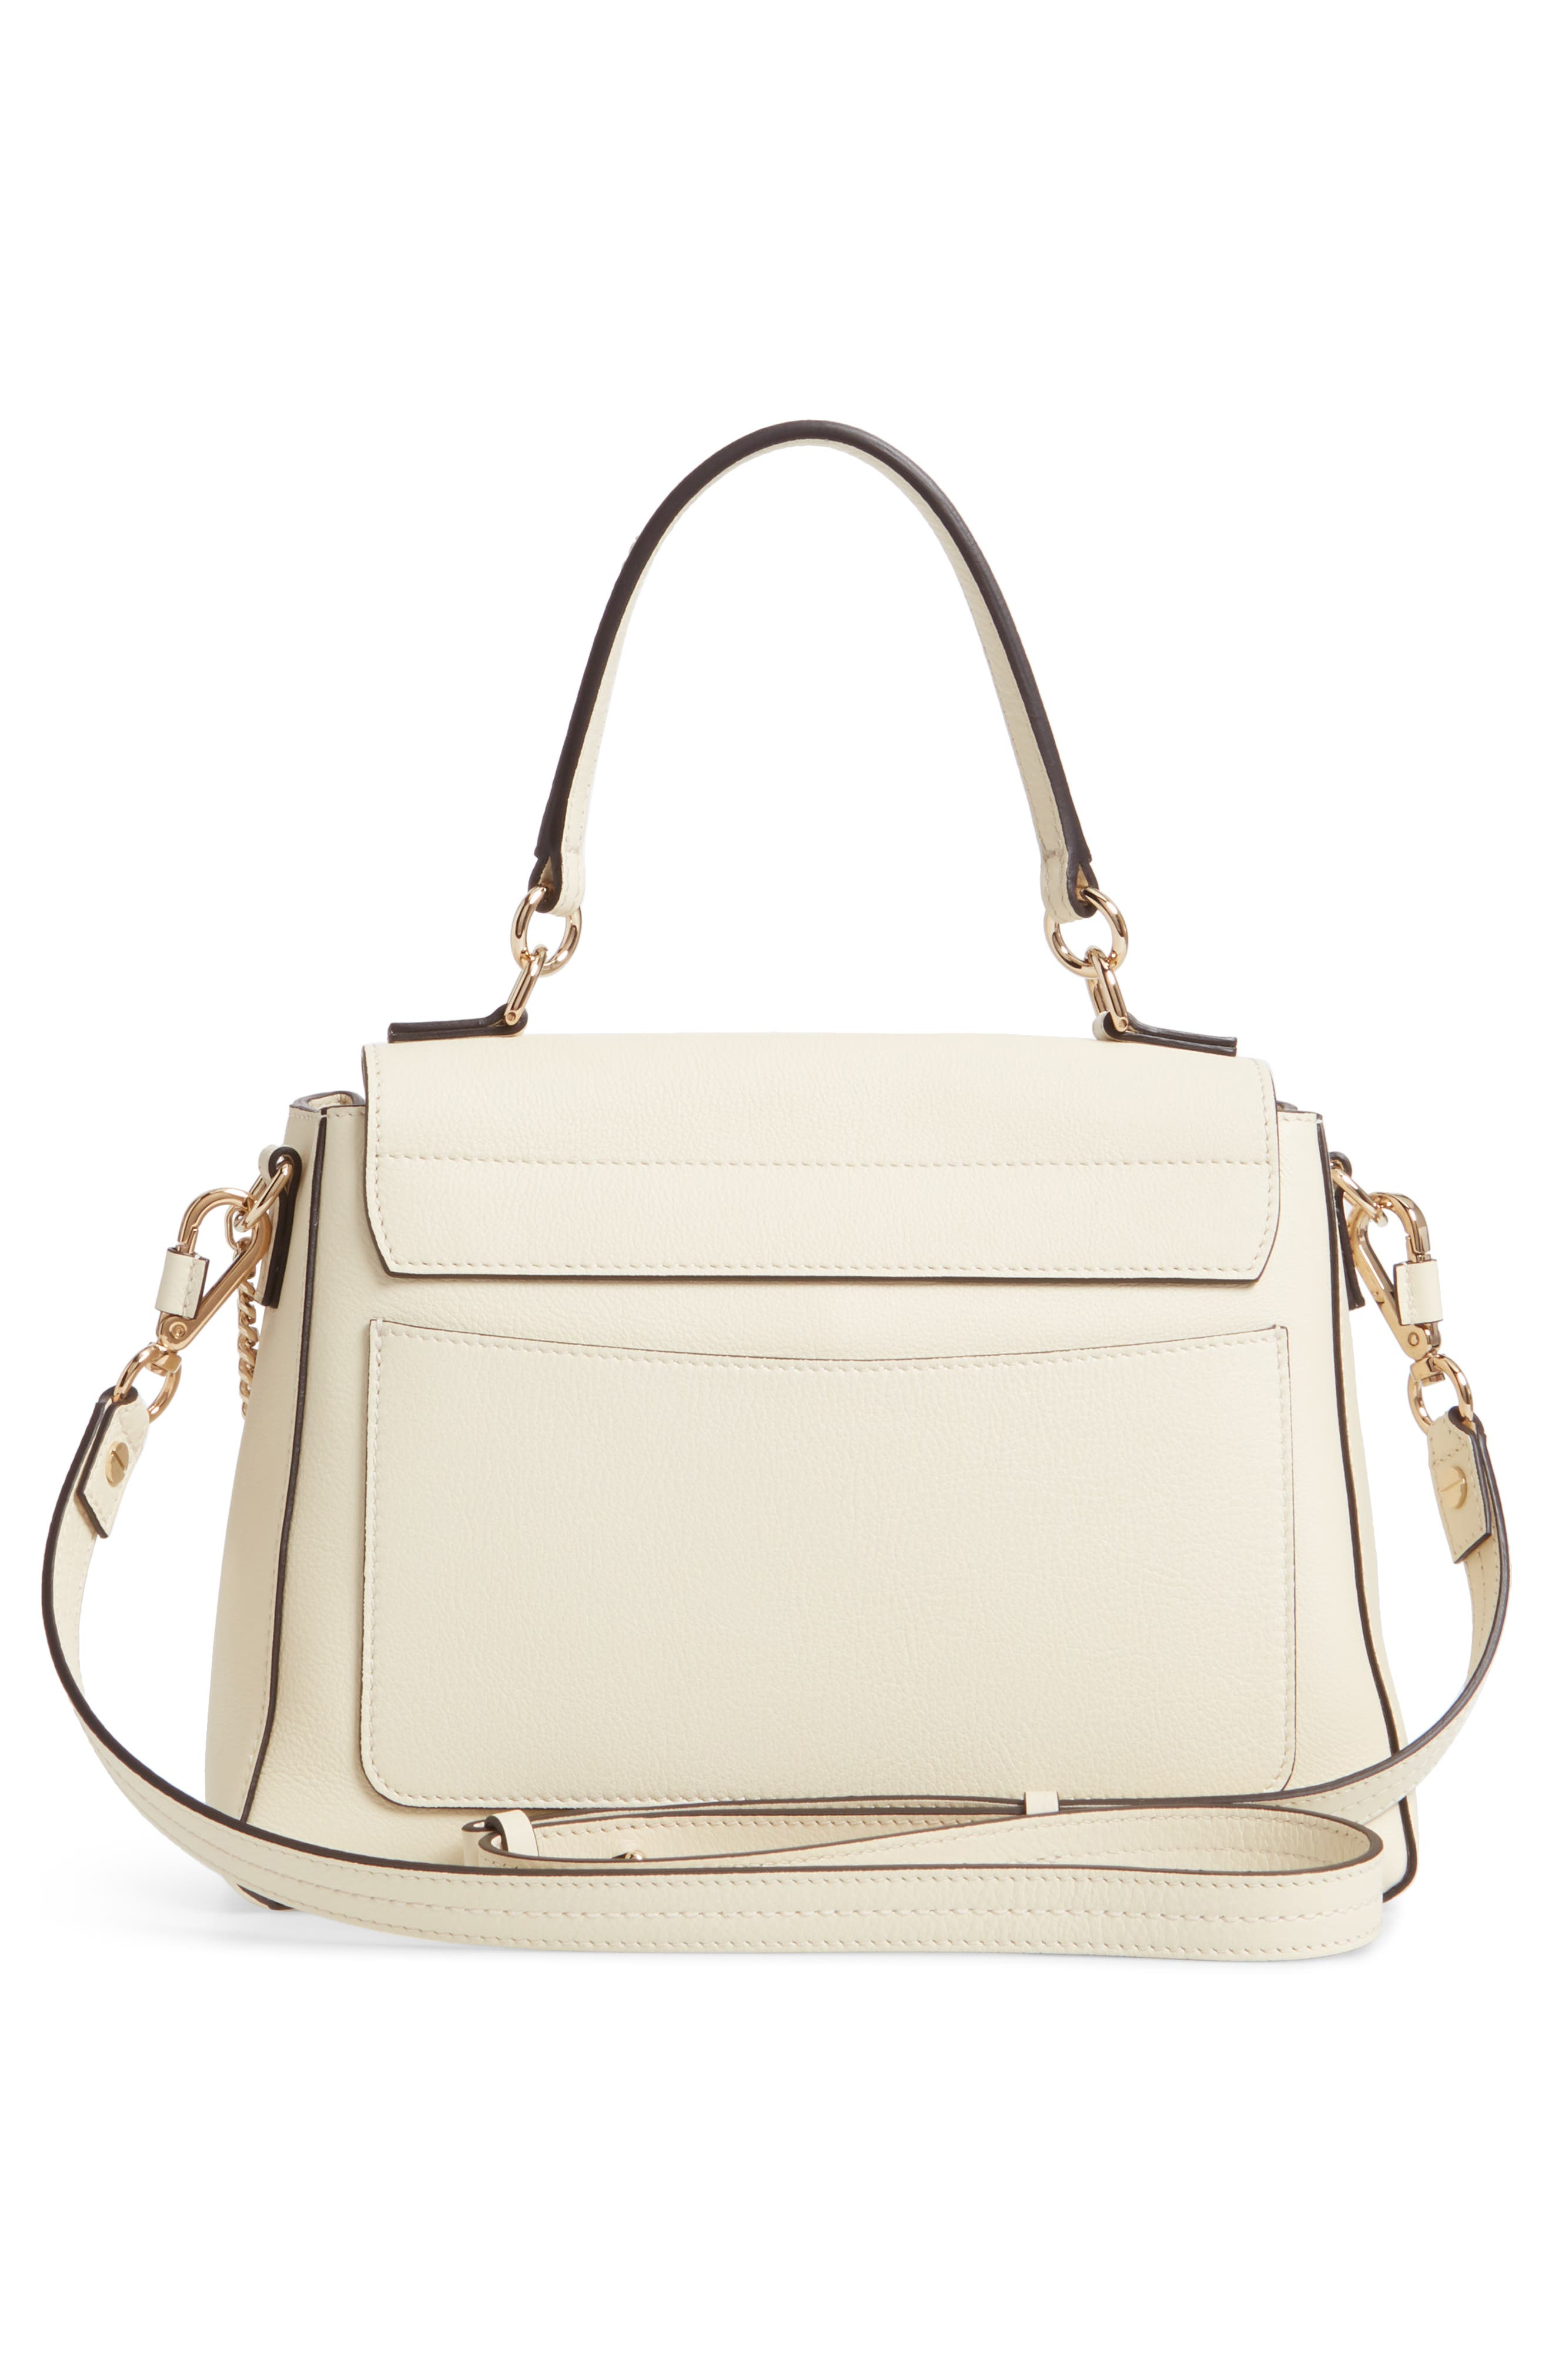 CHLOÉ, Small Faye Day Leather Shoulder Bag, Alternate thumbnail 3, color, OFF WHITE